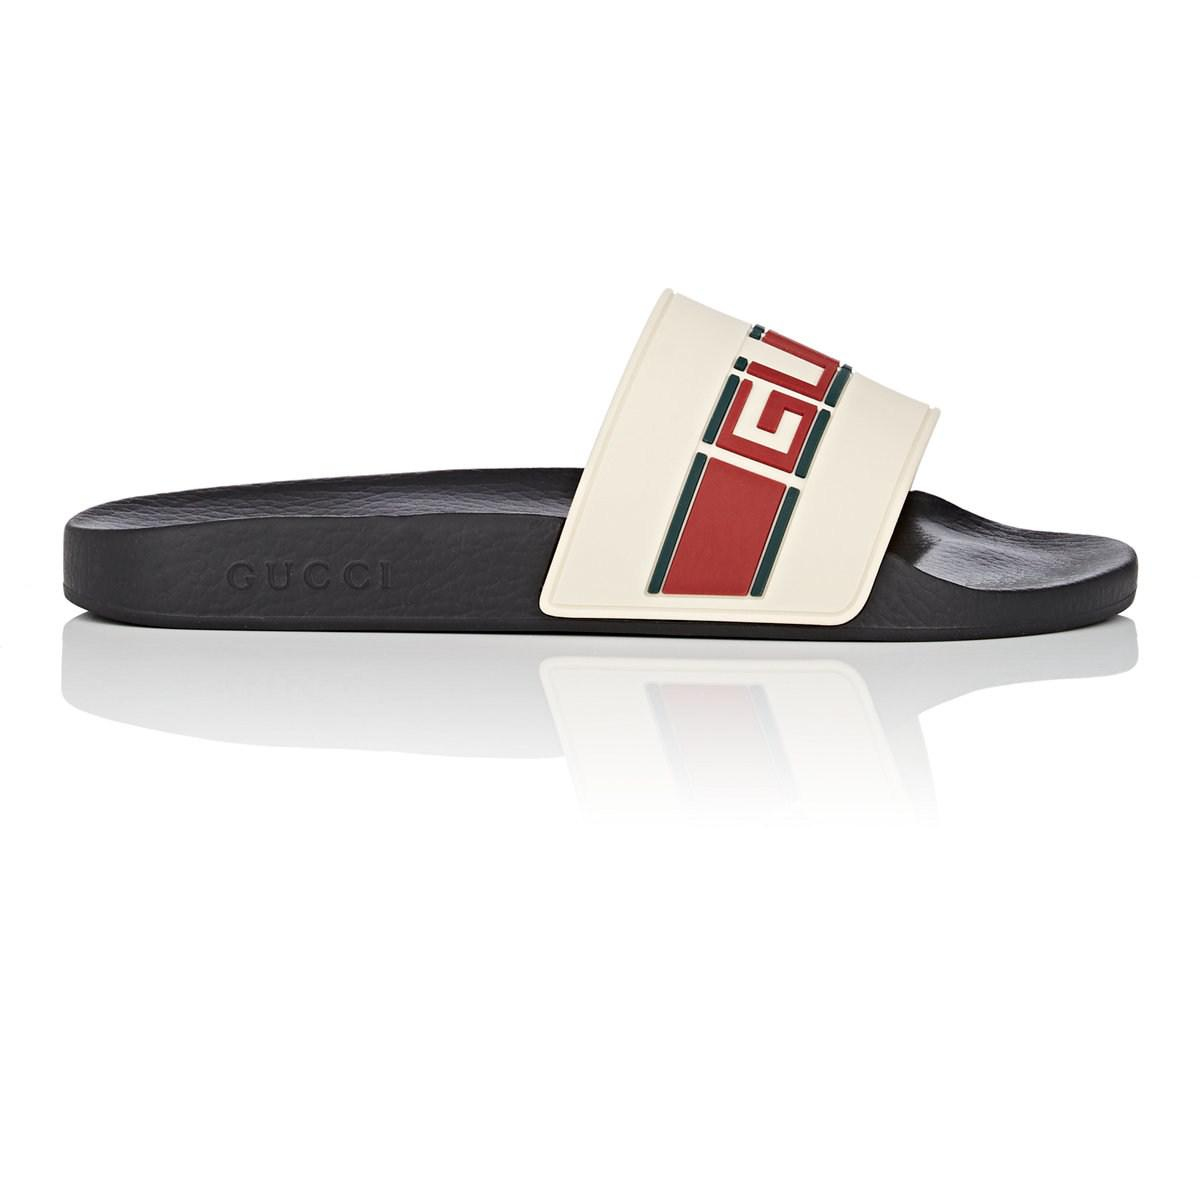 699a421de77 Gucci - Black Striped-logo Rubber Slide Sandals for Men - Lyst. View  fullscreen